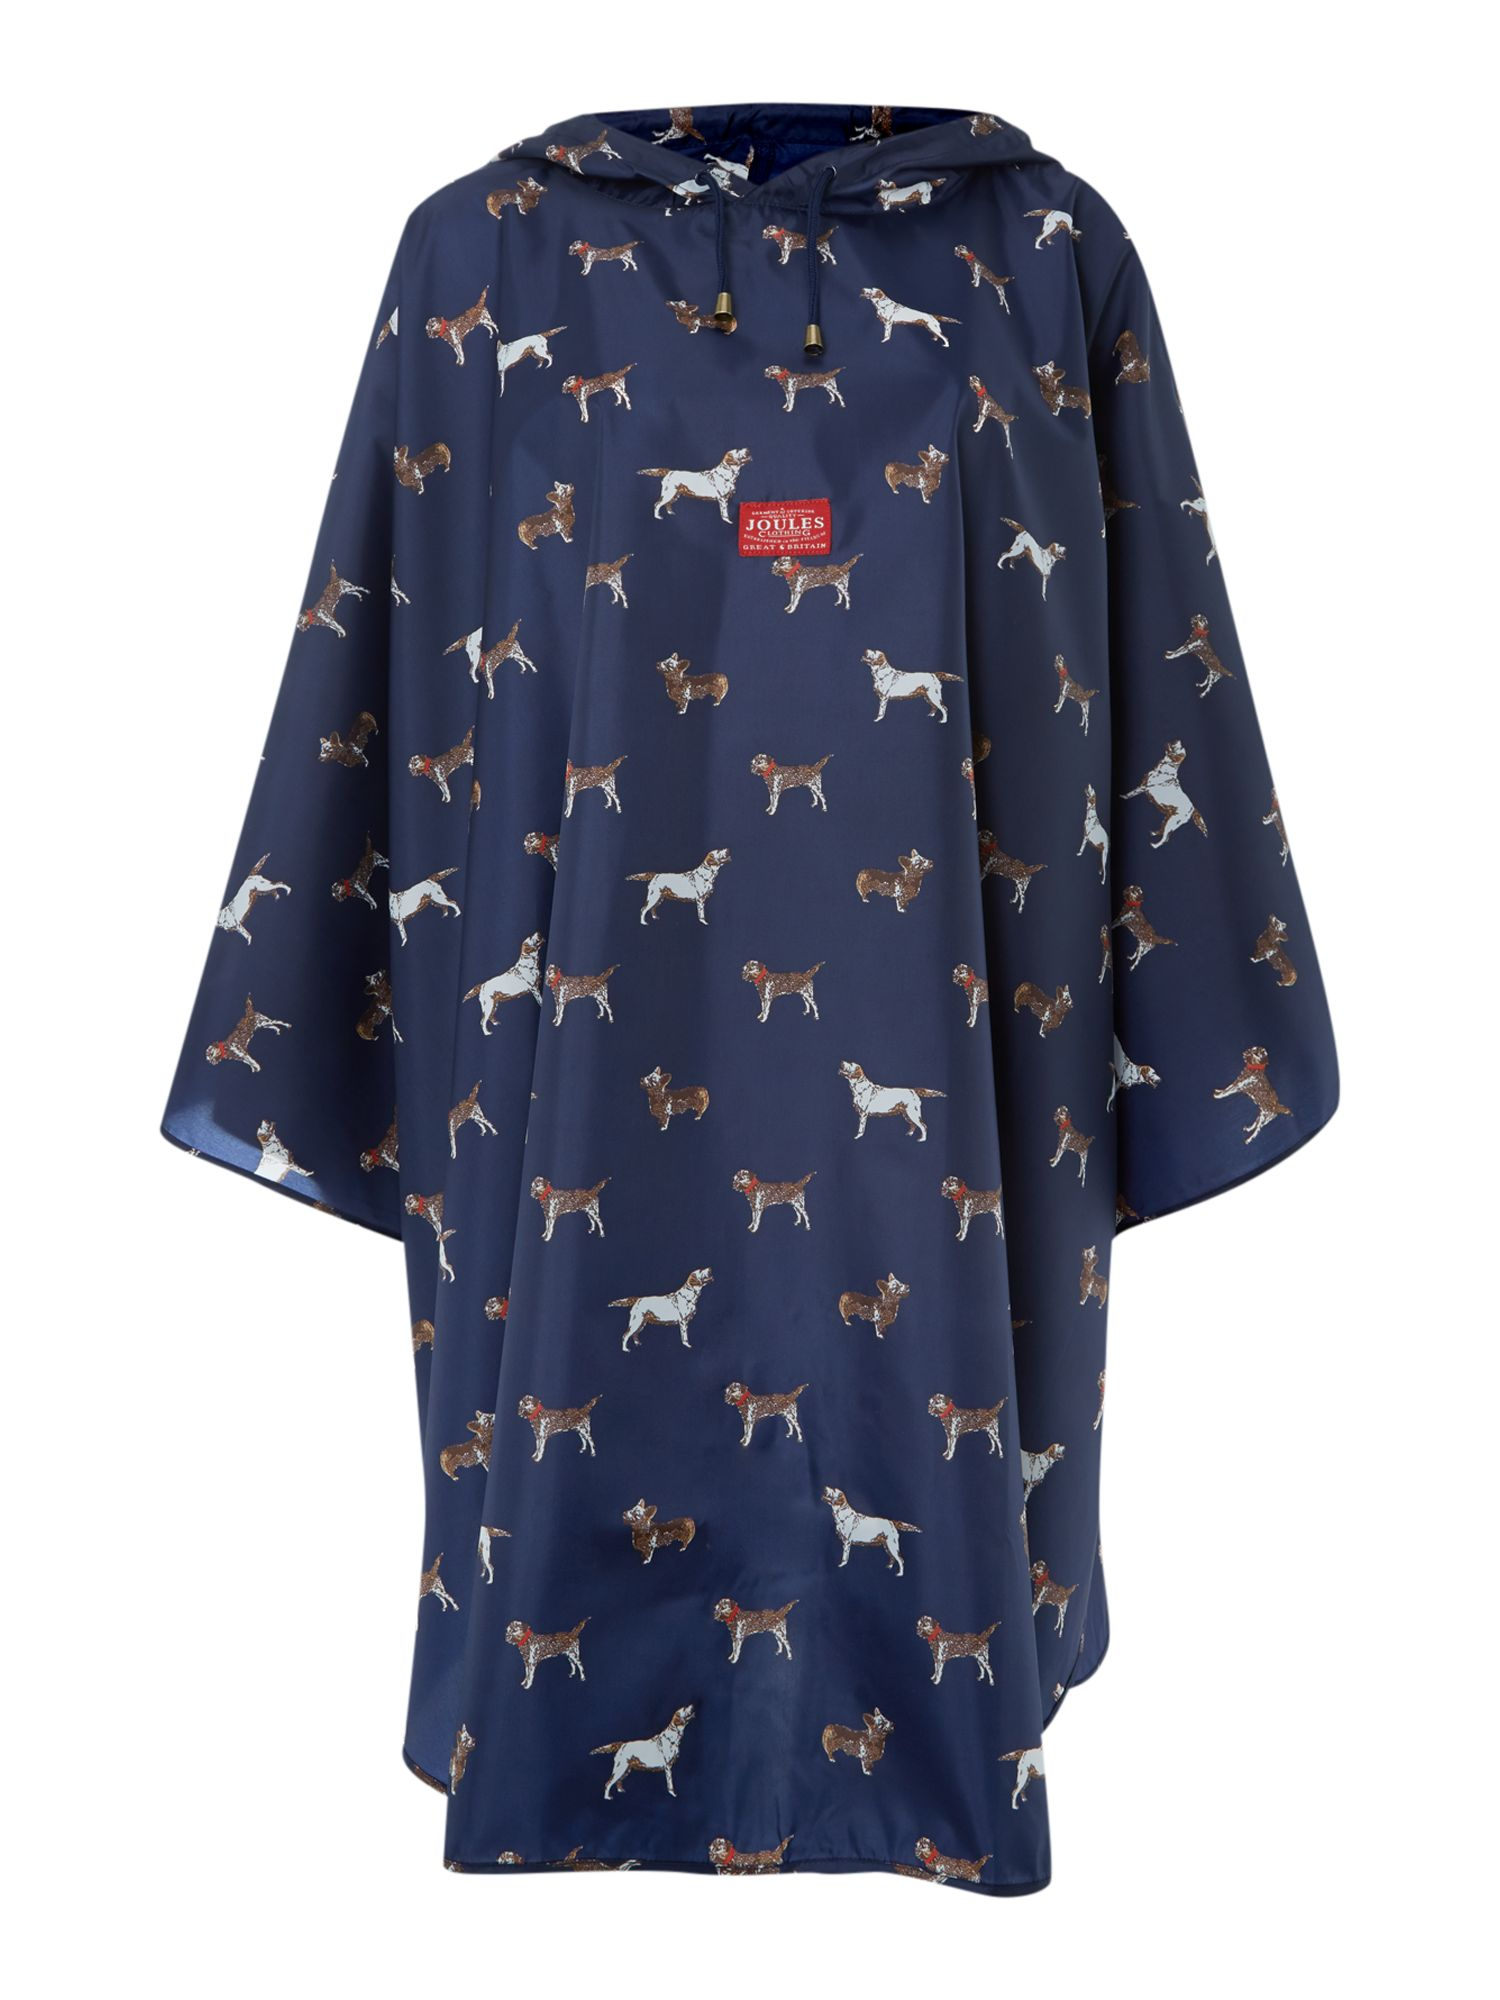 Navy dogs showerproof poncho